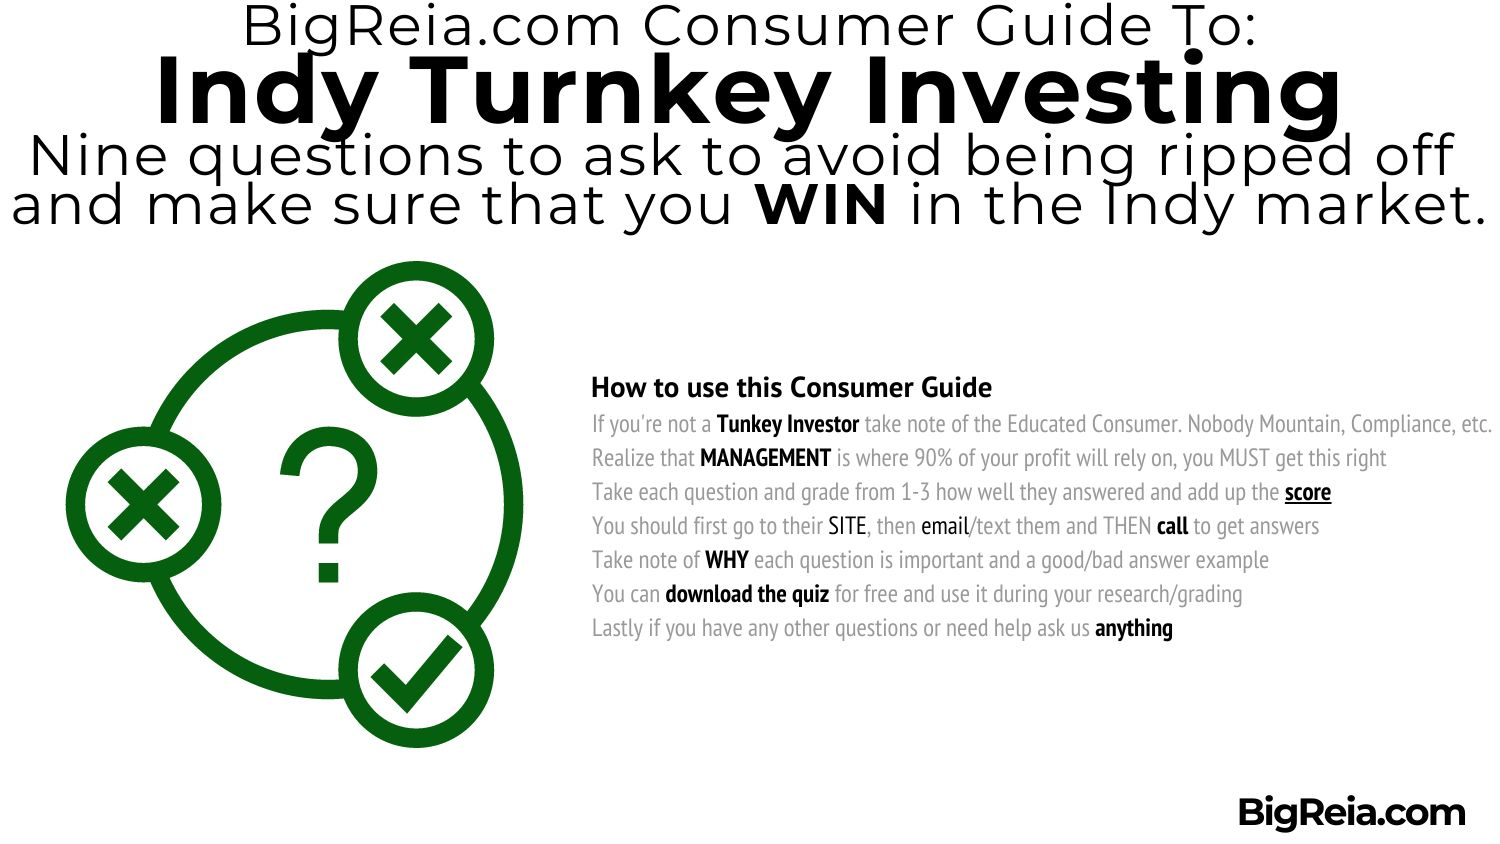 How to use these questions to screen Indiana Turnkey investing people